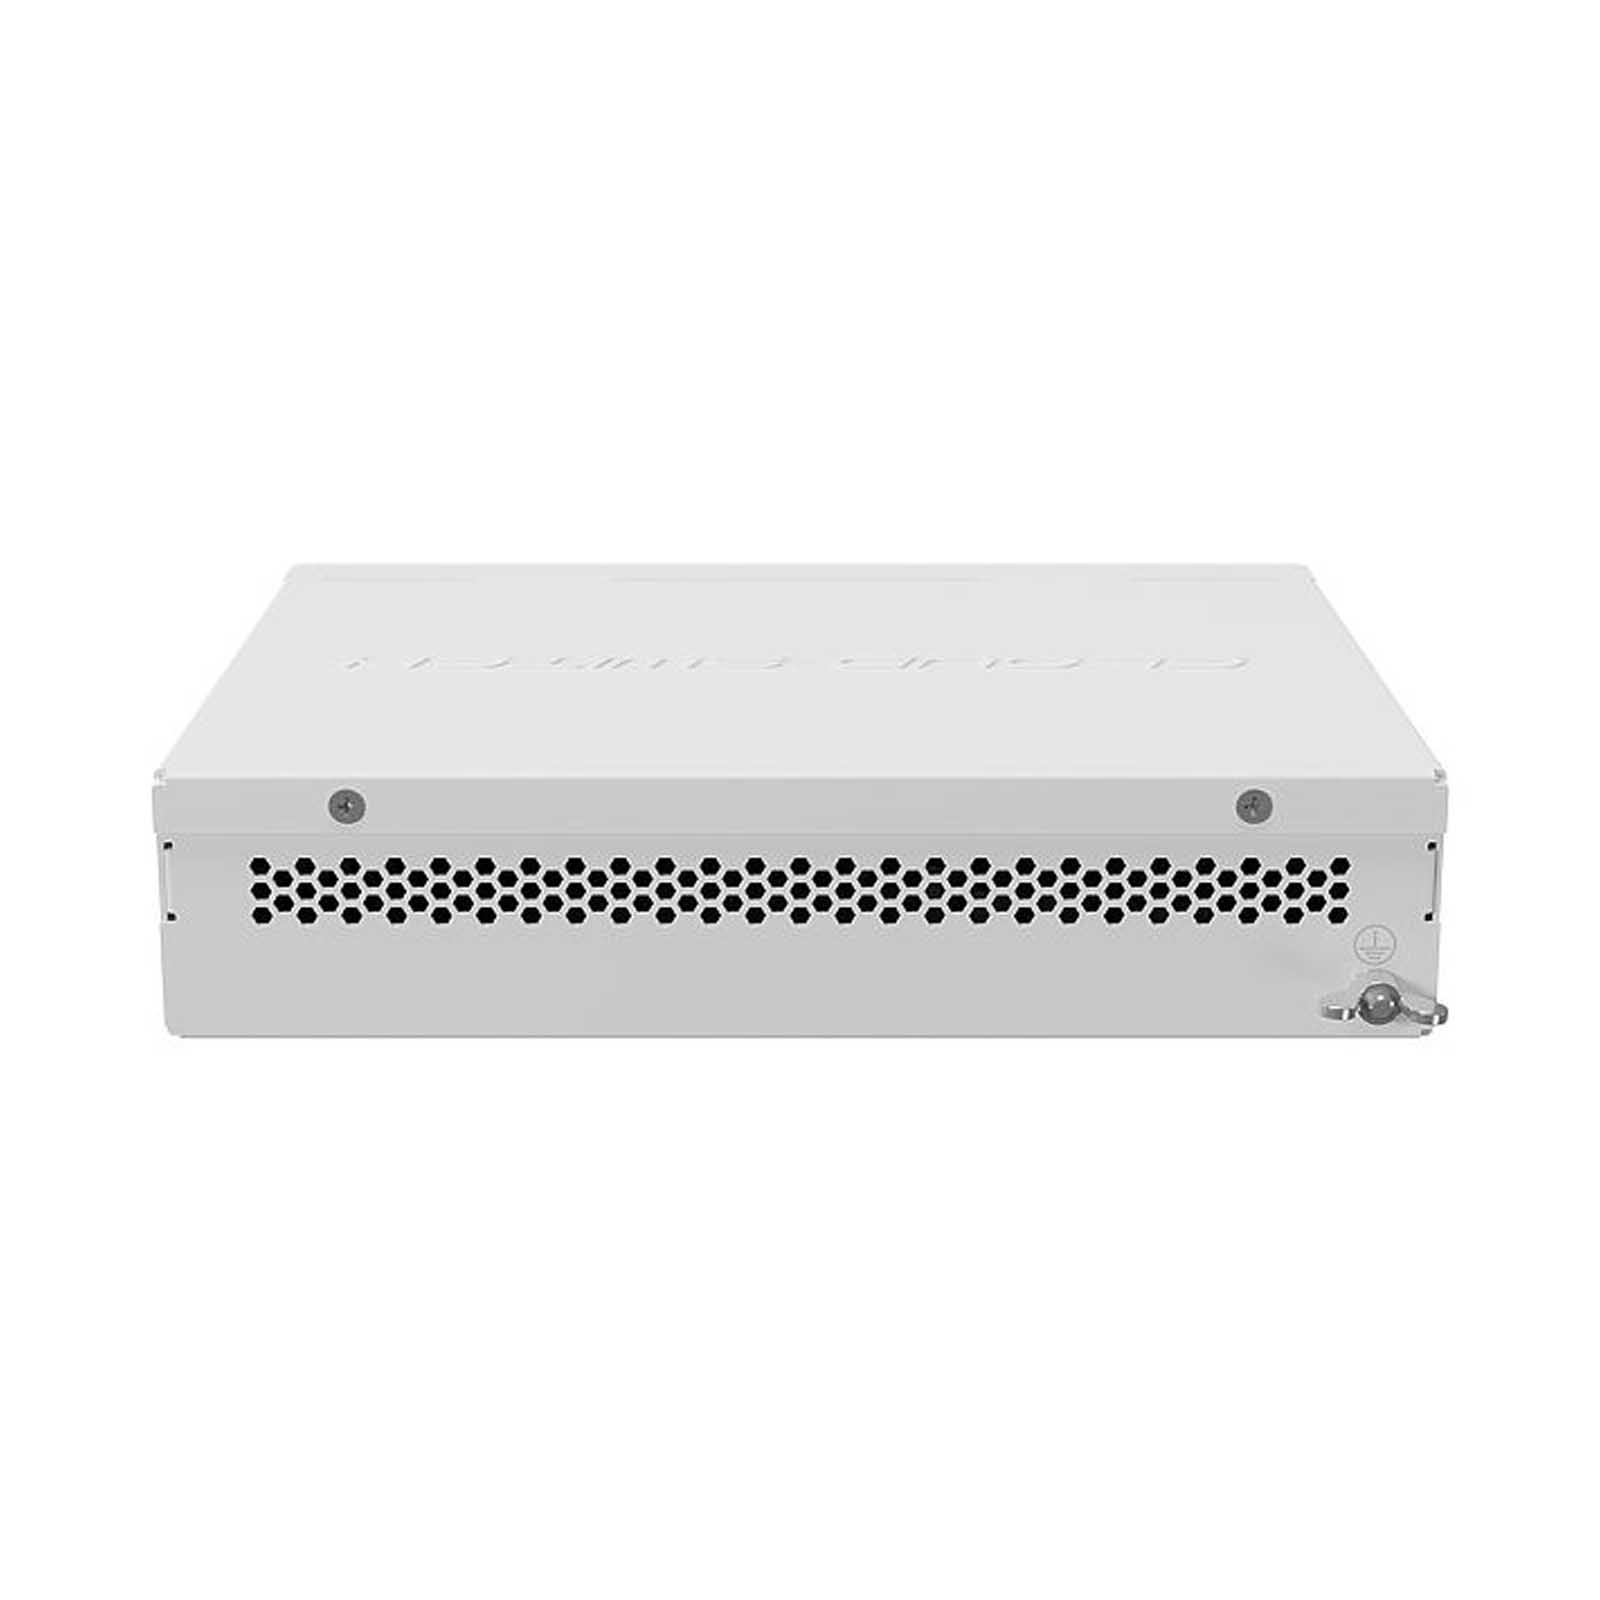 MikroTik Cloud Smart Switch CSS610-8G-2S+IN